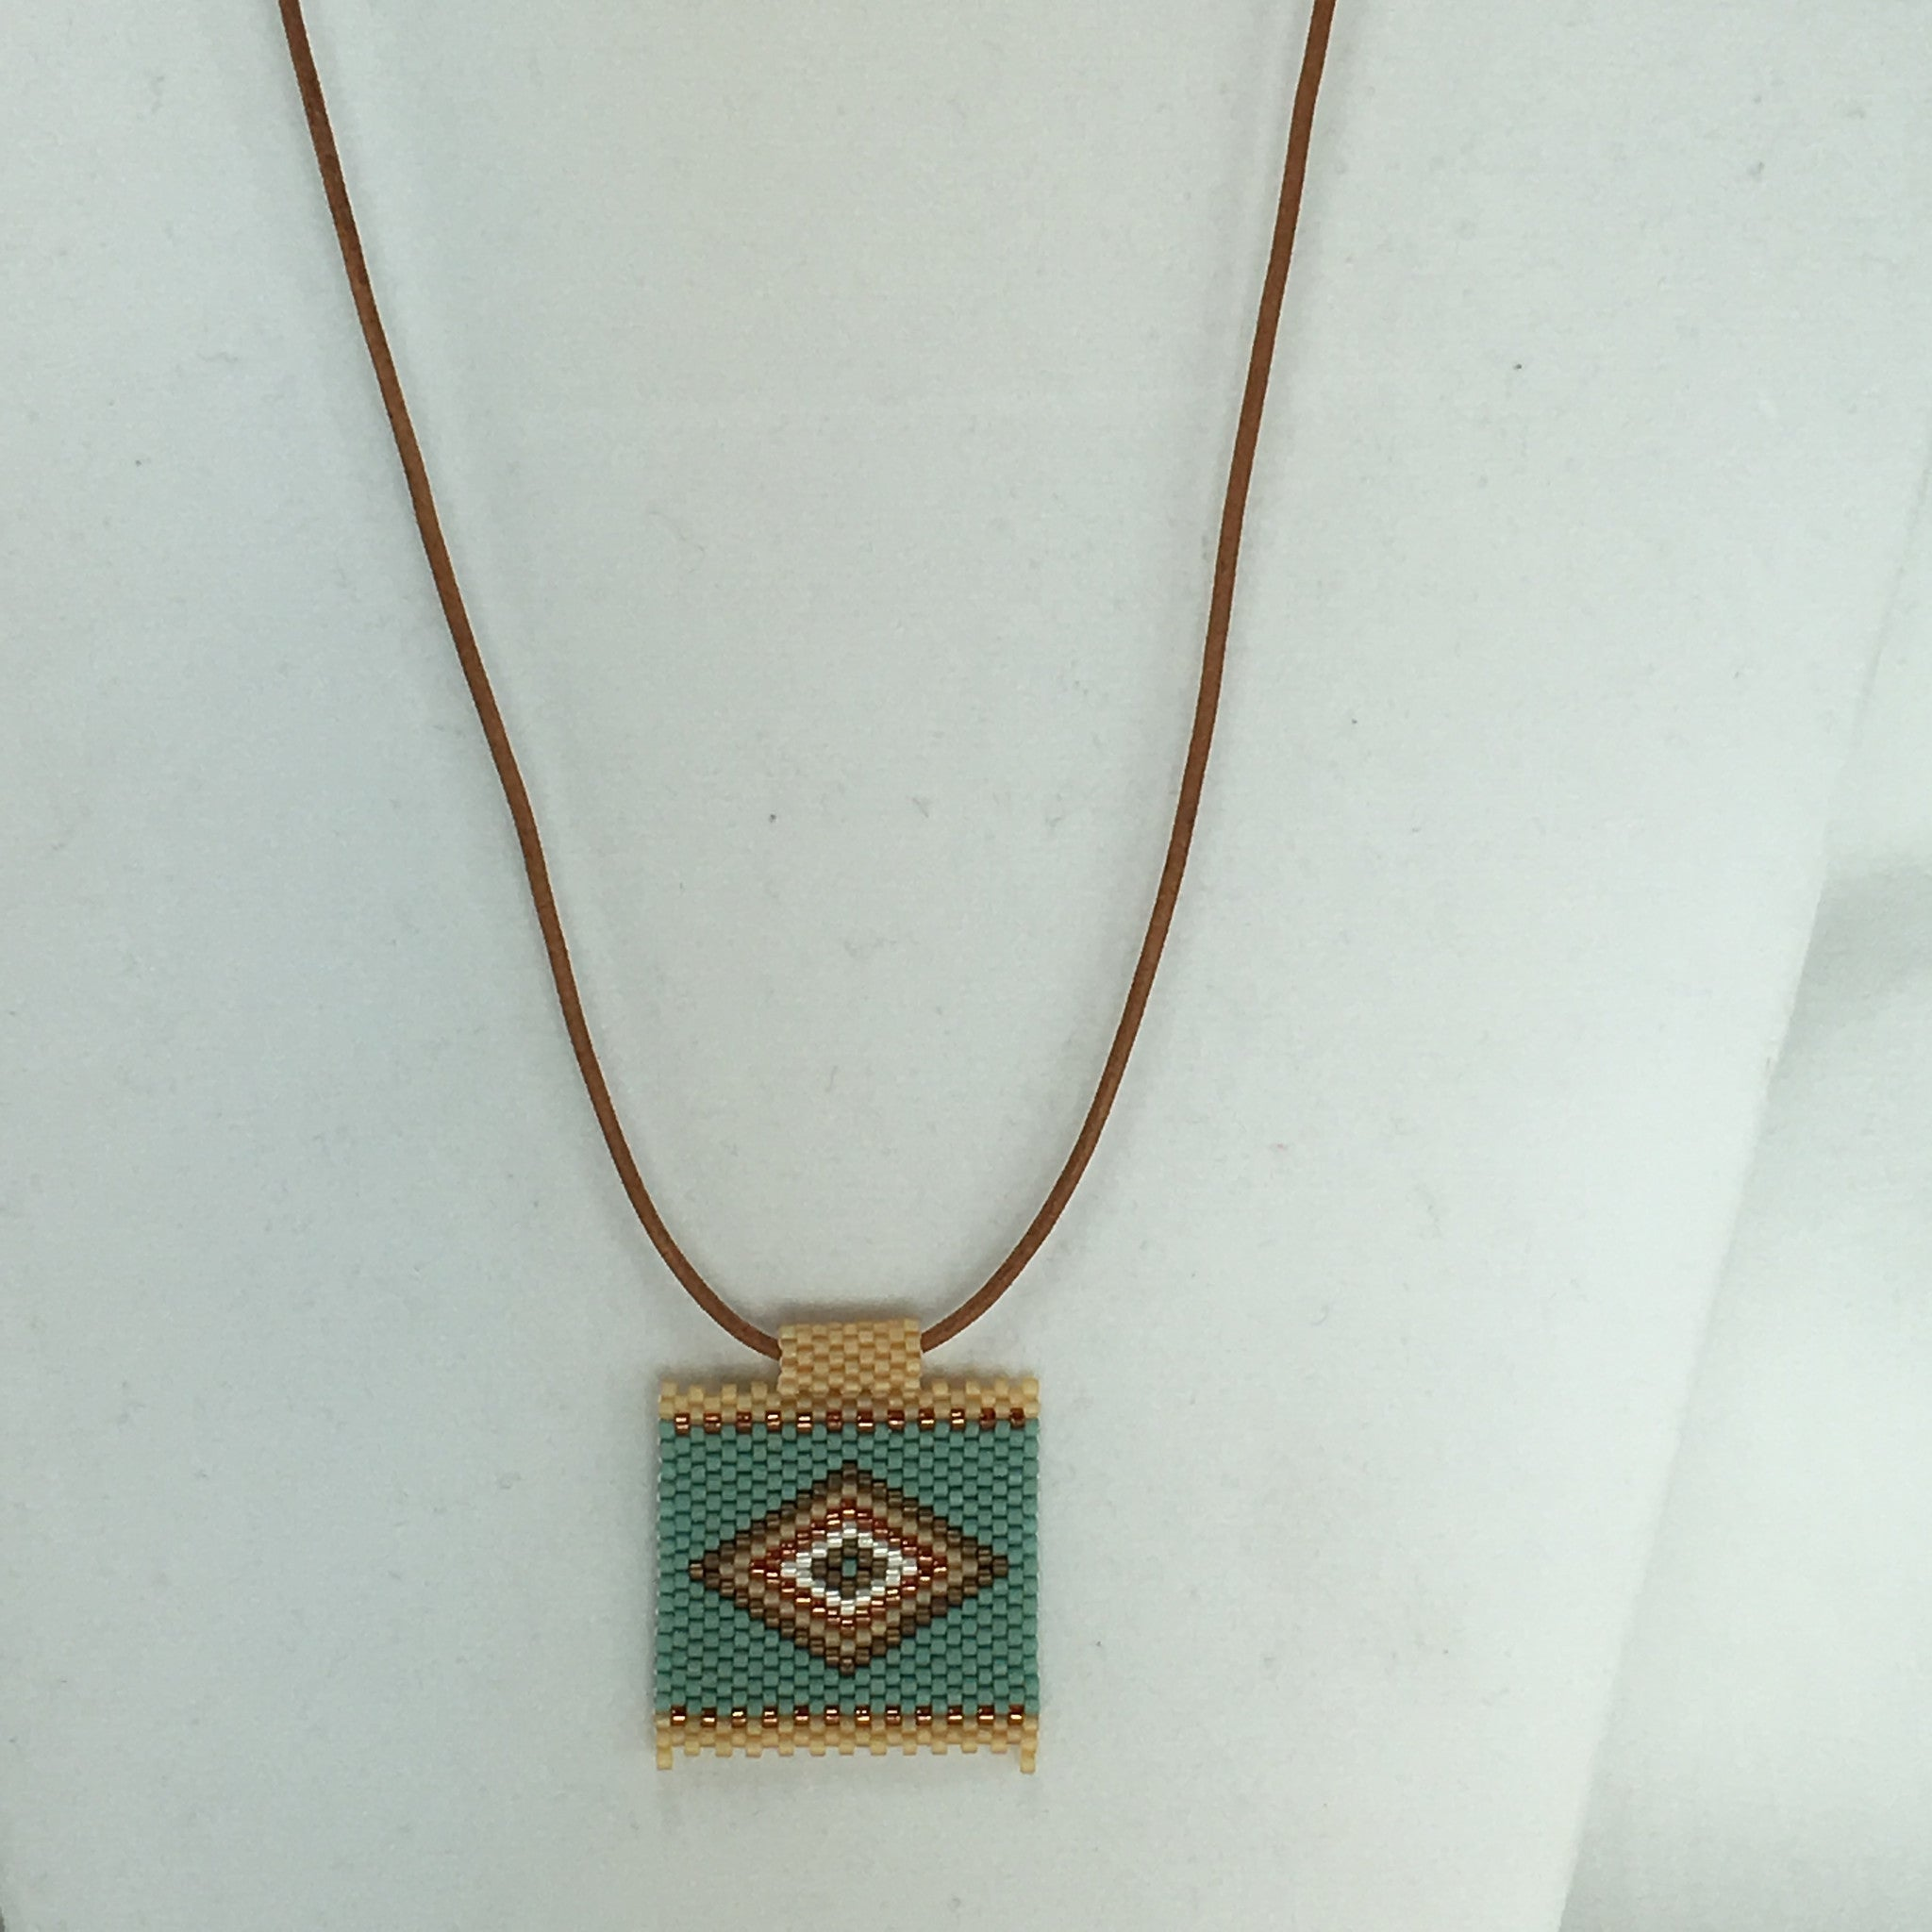 cut gold in with white diamond kt products round halo custom kite allure set pendant necklace shaped diamonds surrounded a emerald style